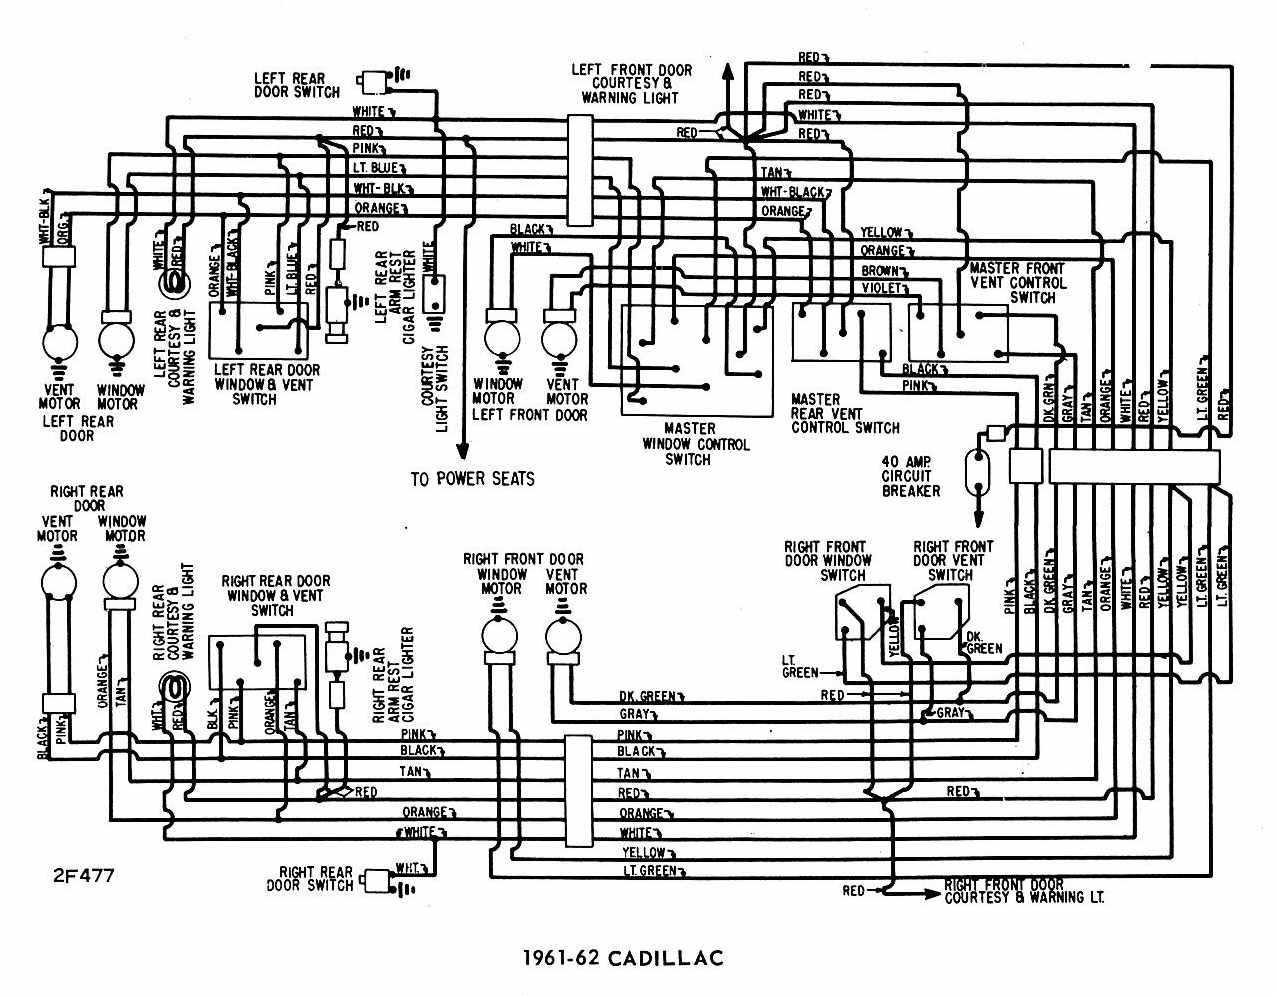 windows wiring diagram of 1961 62 cadillac?t\=1508149295 1996 cadillac deville engine diagram success data schema \u2022